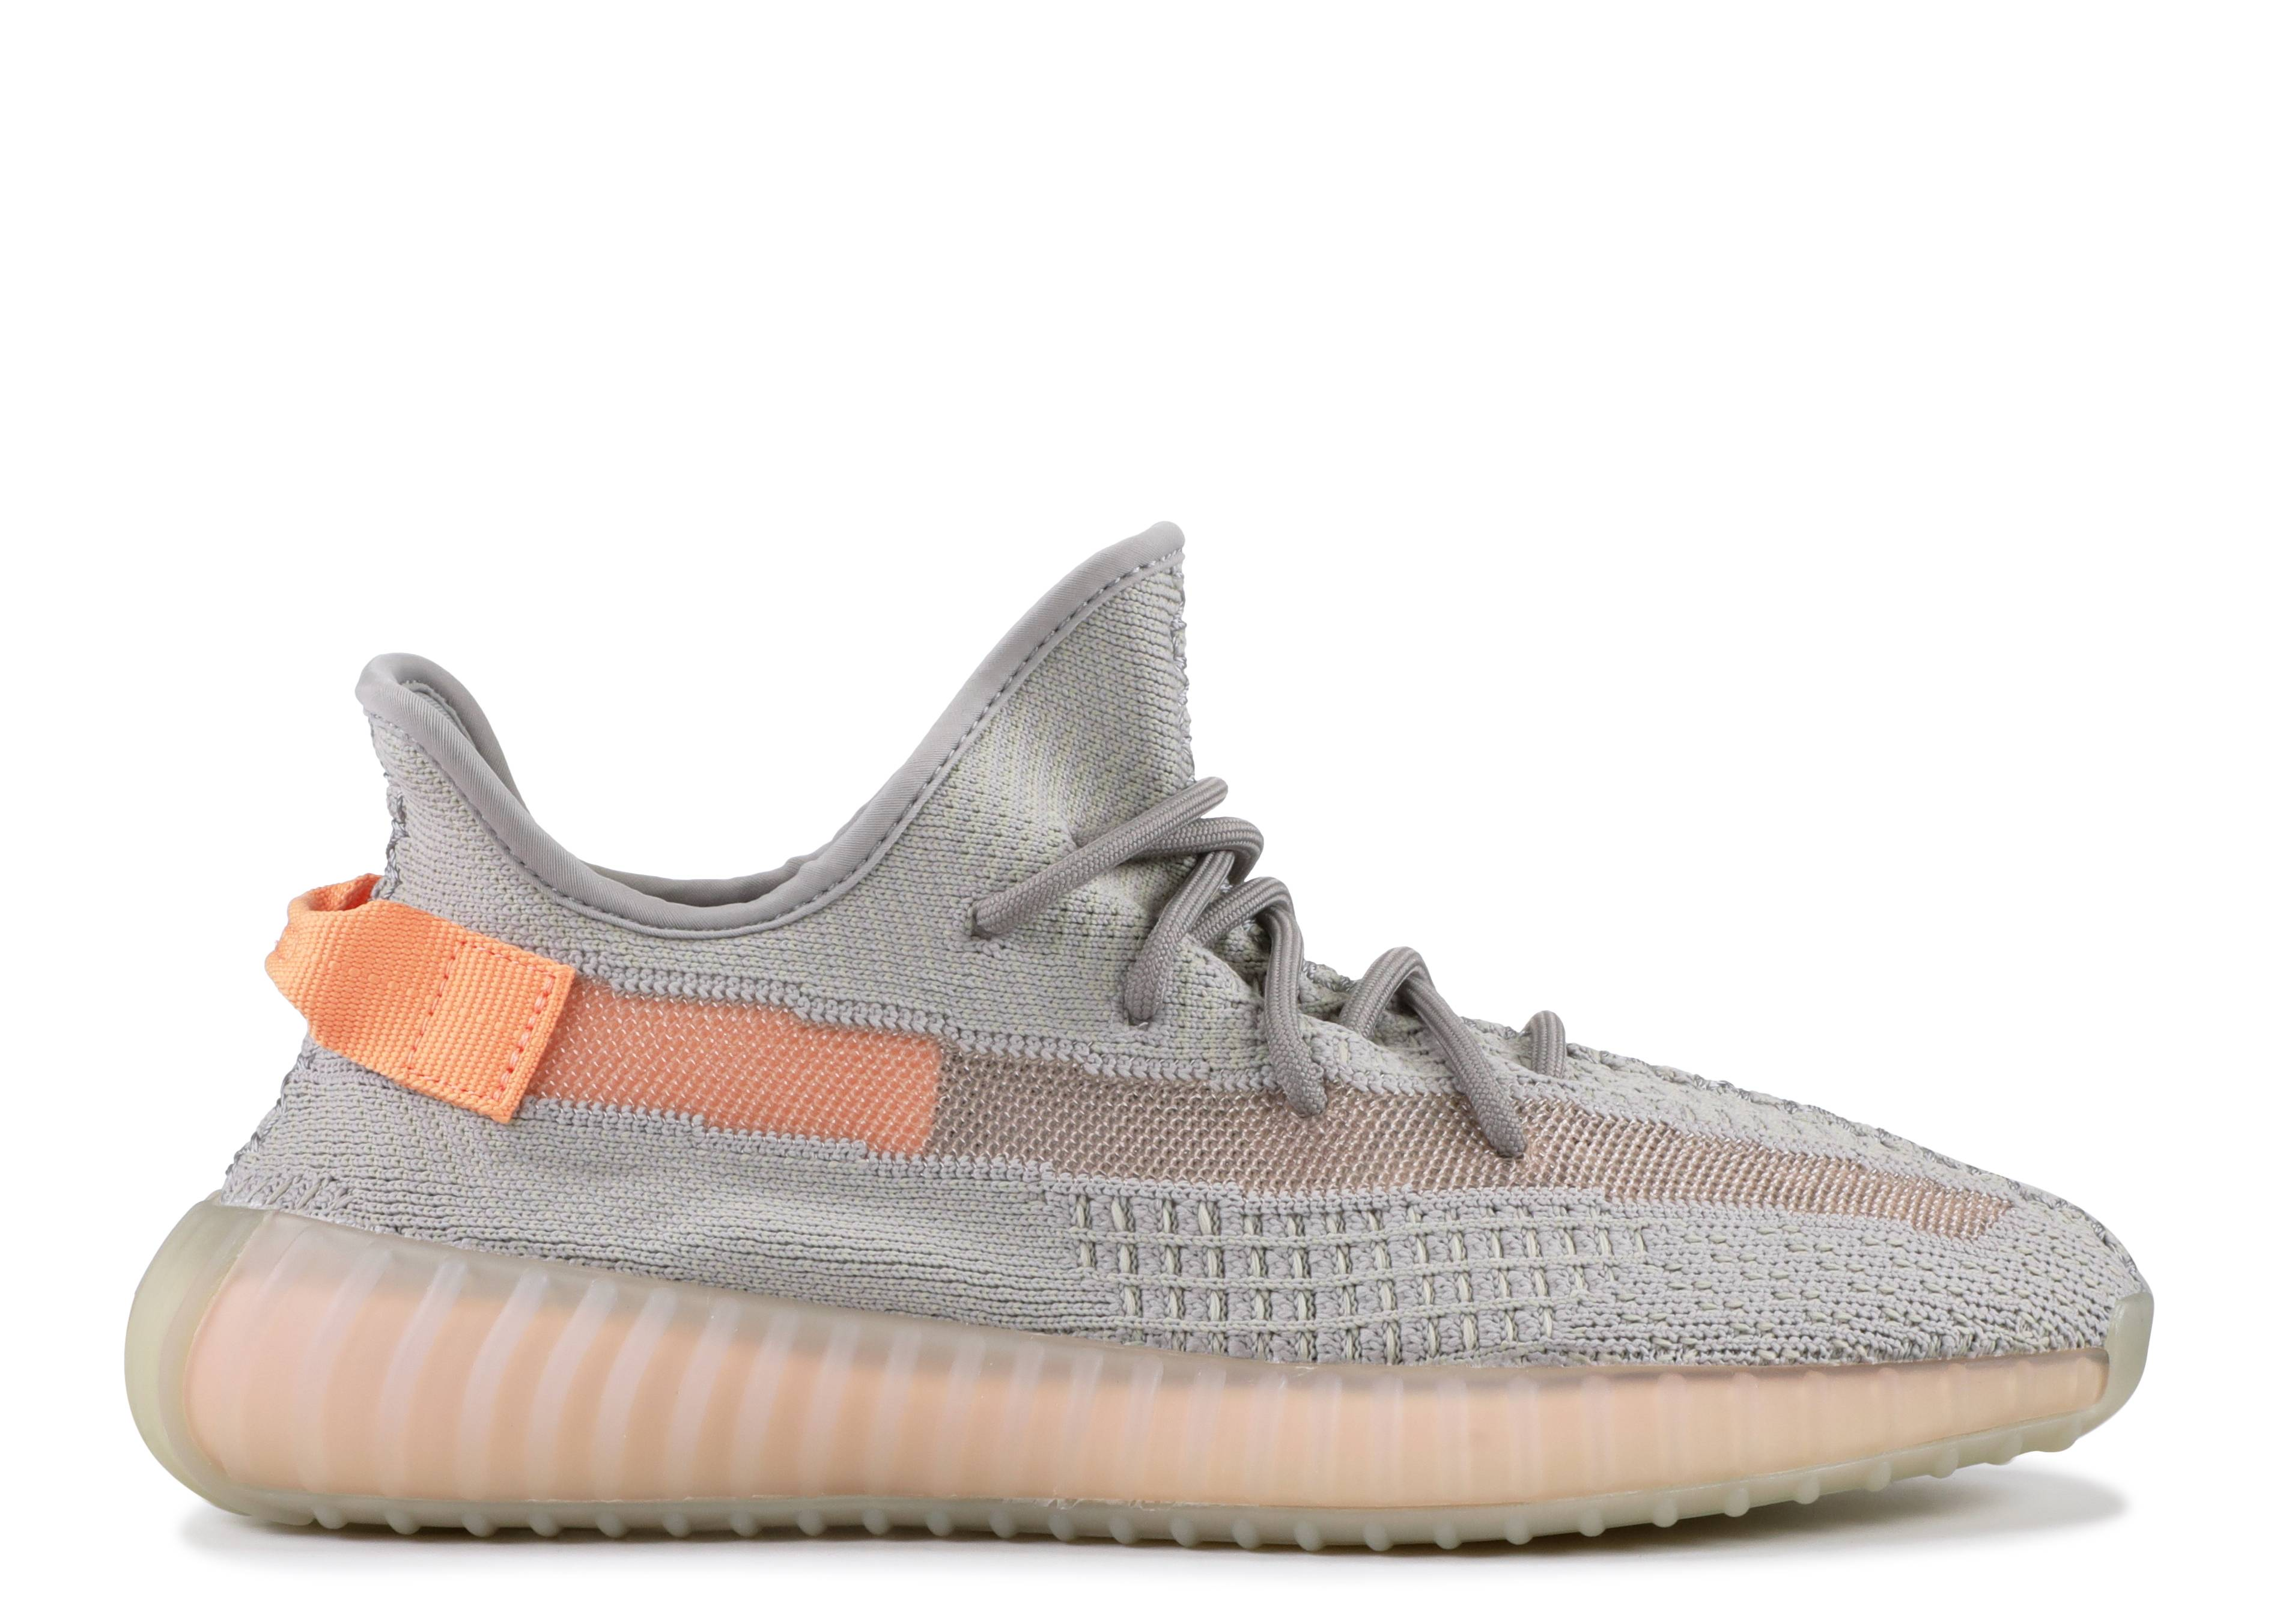 3c3fa050376 Yeezy Boost 350 V2